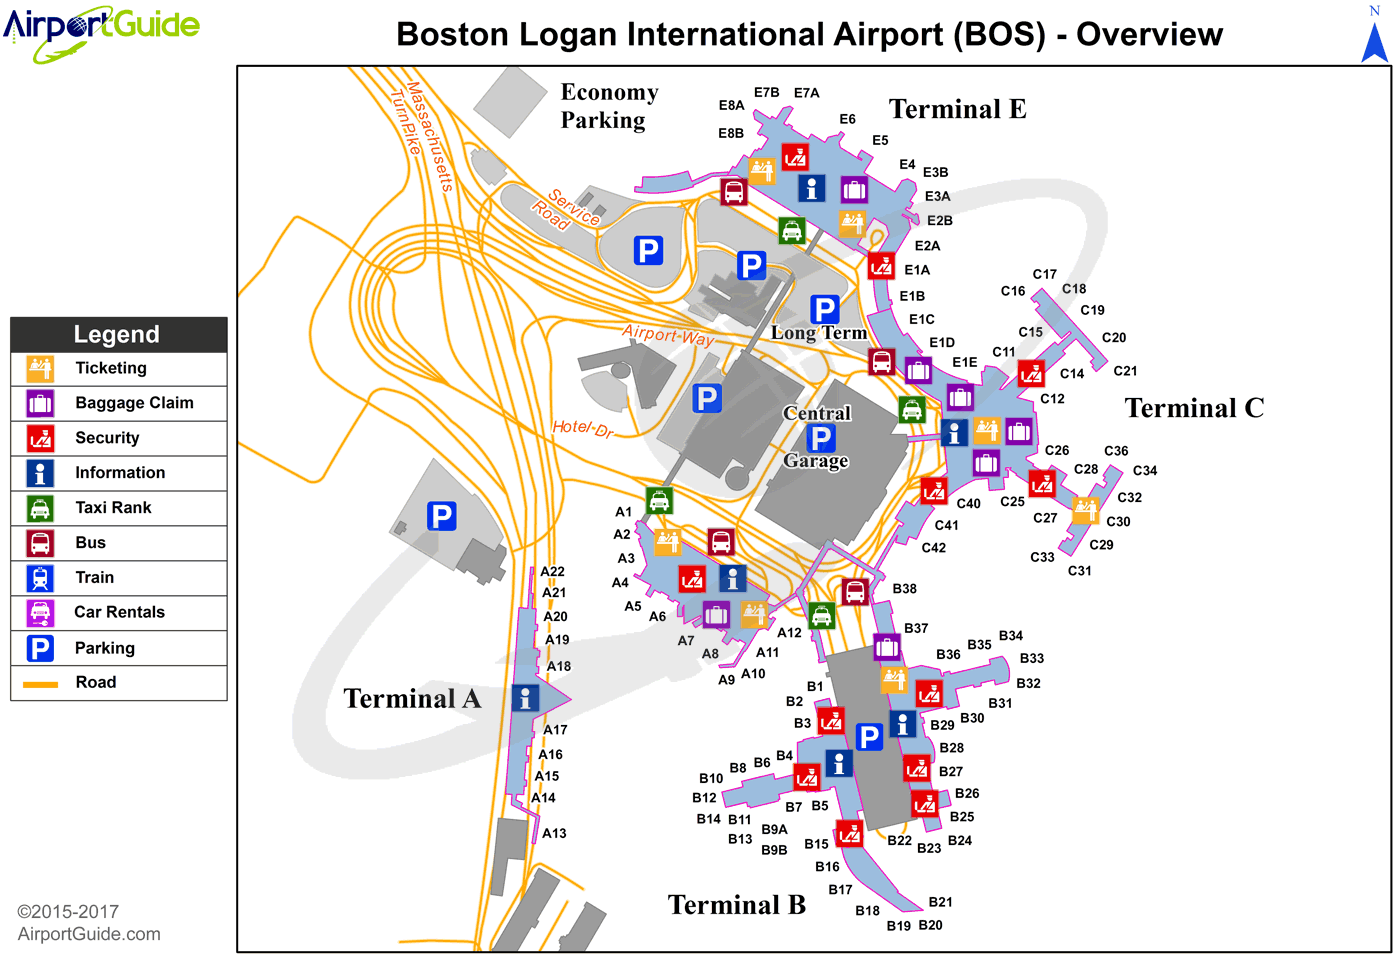 Boston - General Edward Lawrence Logan International (BOS) Airport Terminal Map - Overview